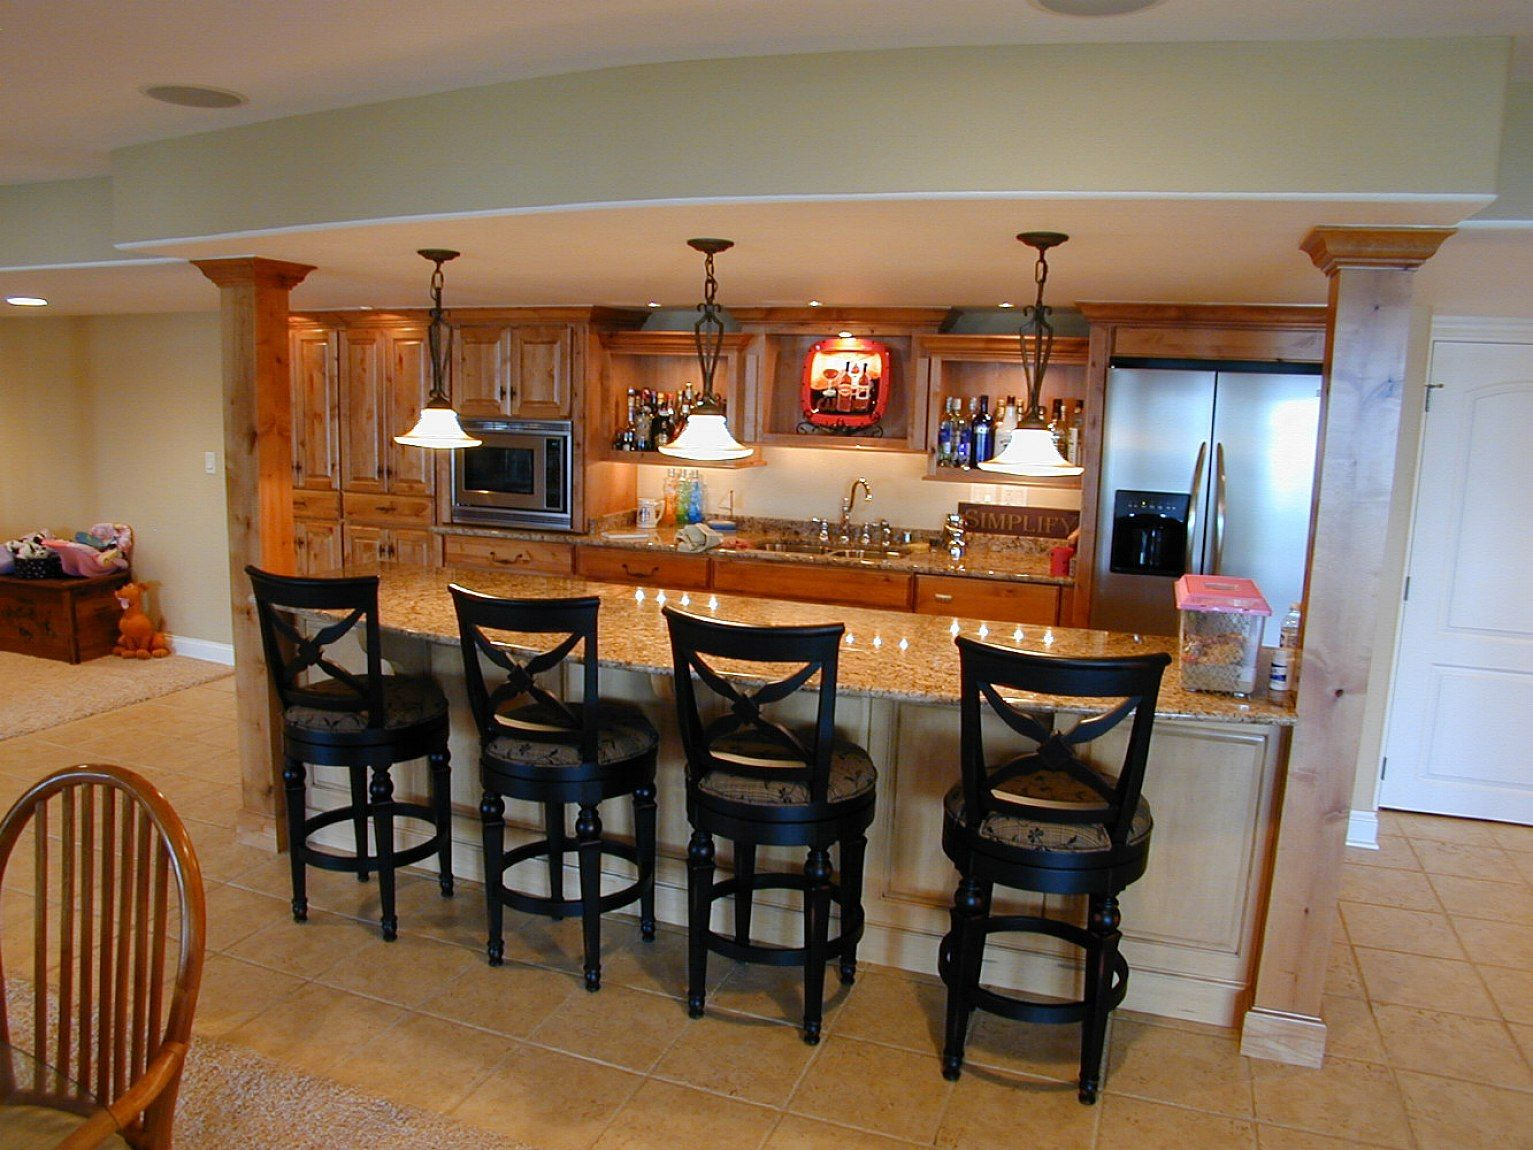 23 most popular small basement ideas decor and remodel - Finished Basement Design Ideas